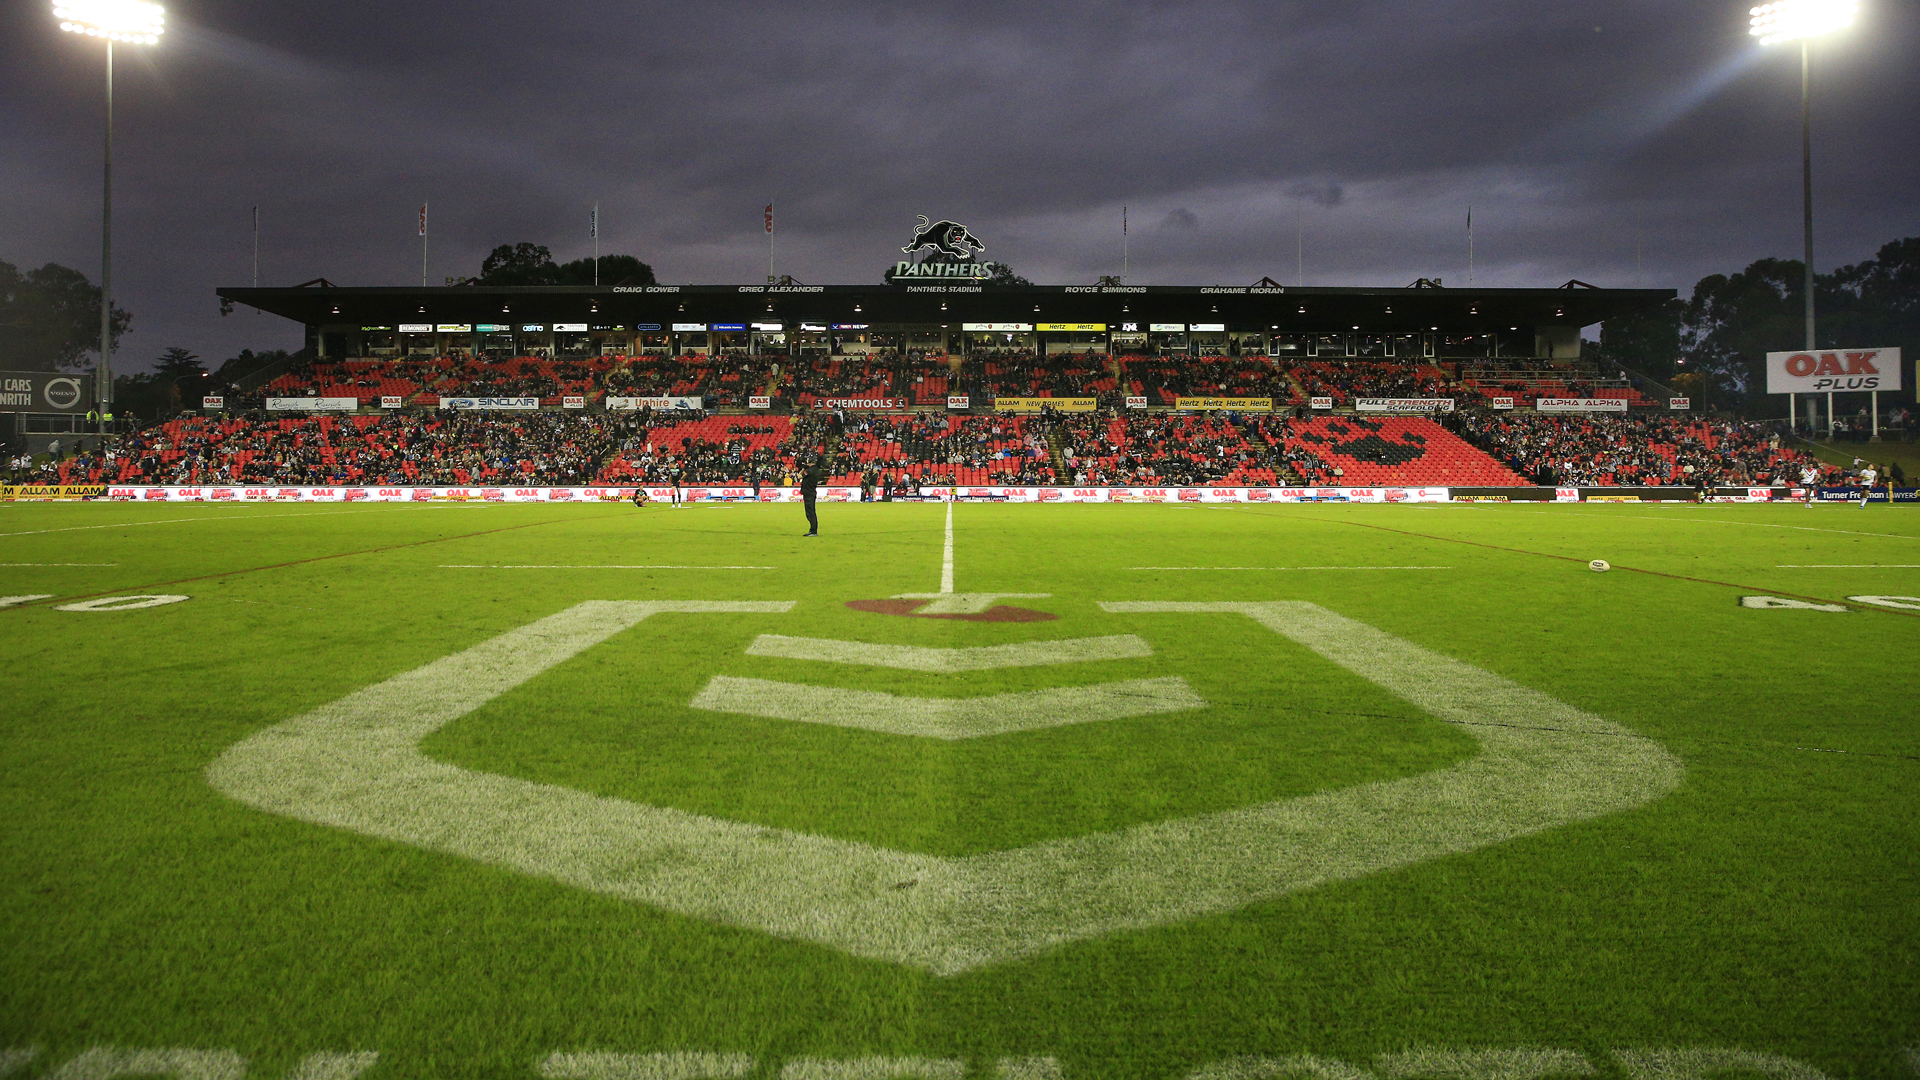 Coronavirus: NSW premier 'can't see' crowds at NRL in July, V'landys says fans should be back